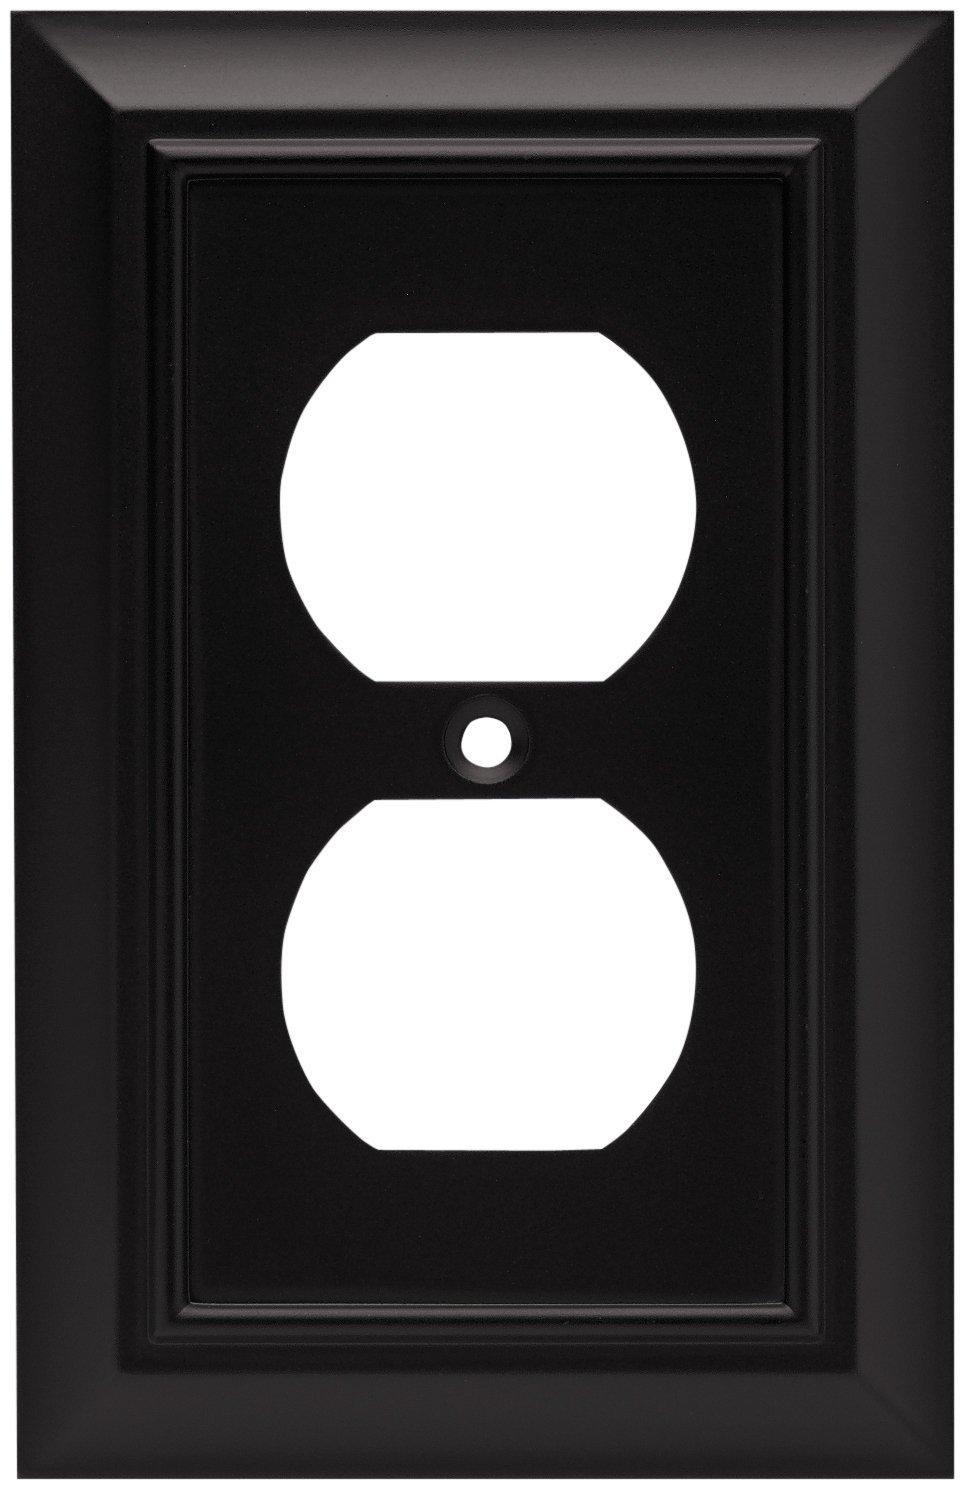 64218 Architectural Single Duplex Outlet Wall Plate Switch Cover Flat Black By Brainerd Ship From Us